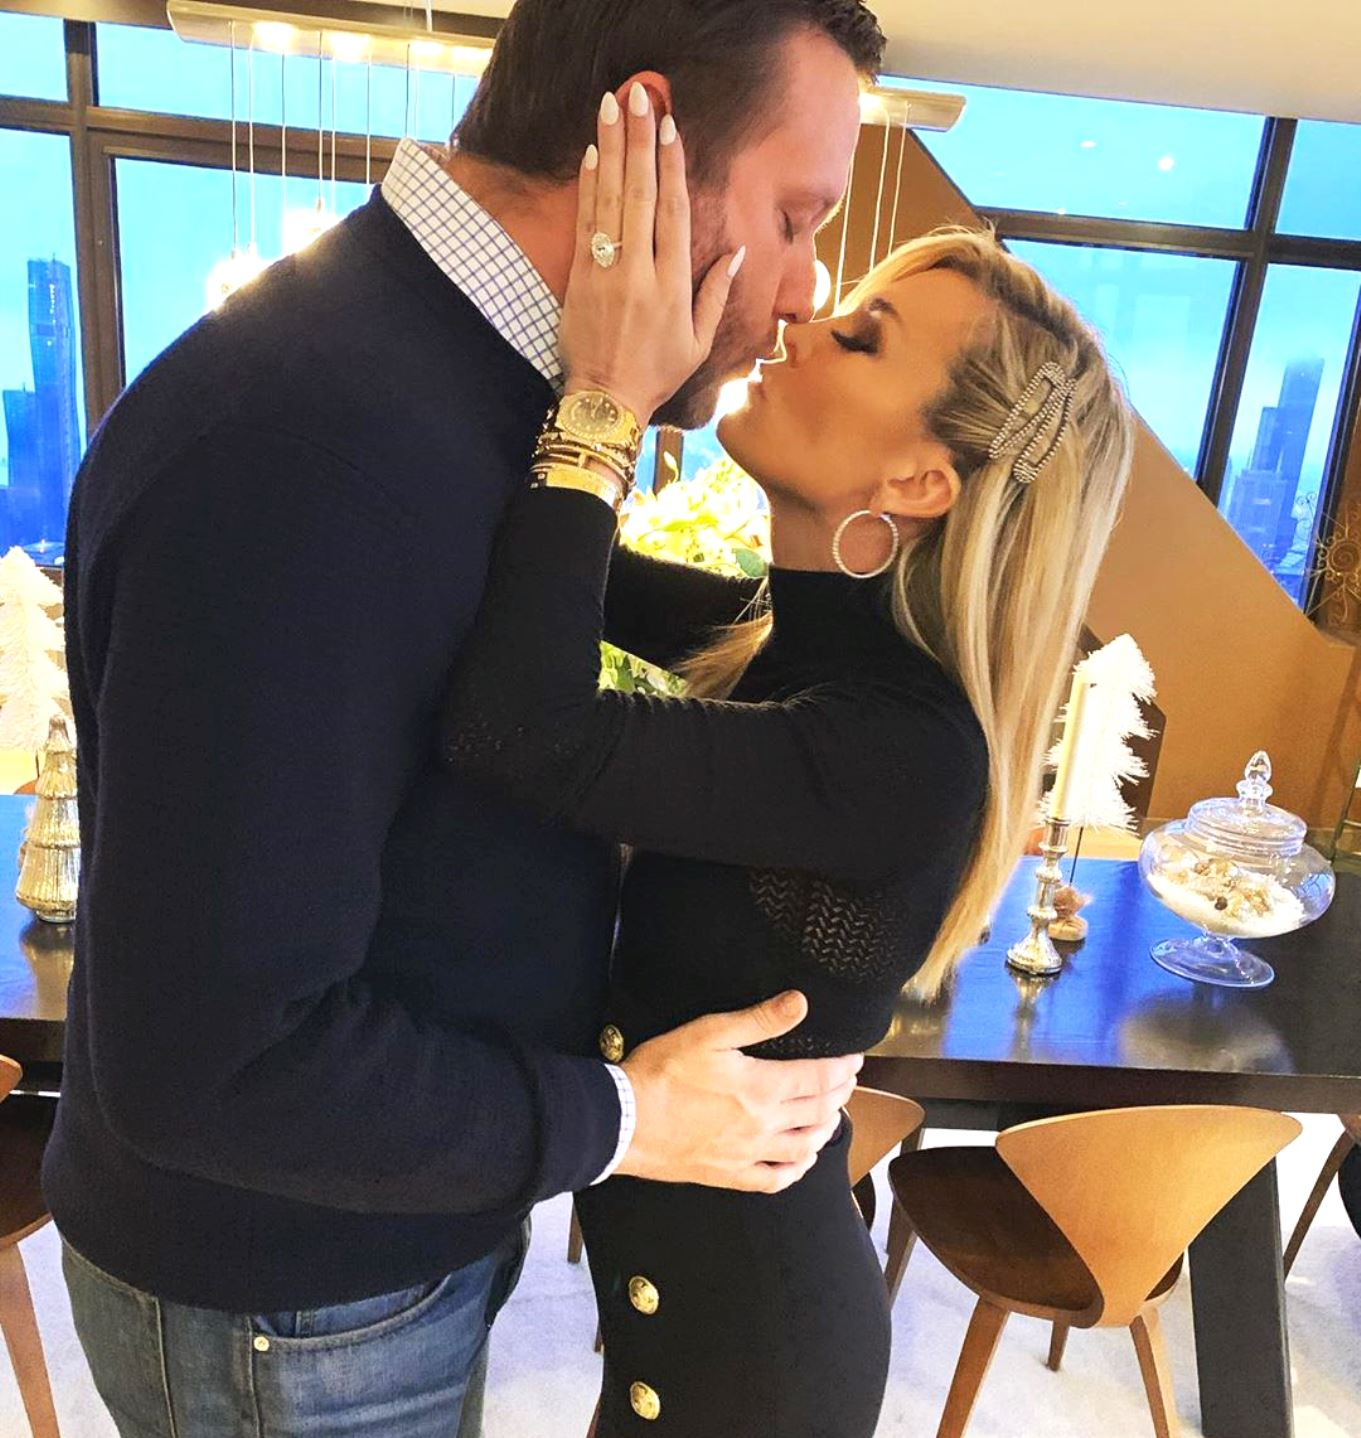 How Much is Tinsley Mortimer's Engagement Ring? Find Out, Plus See Emotional Clip of RHONY Star's Engagement to Boyfriend Scott Kluth